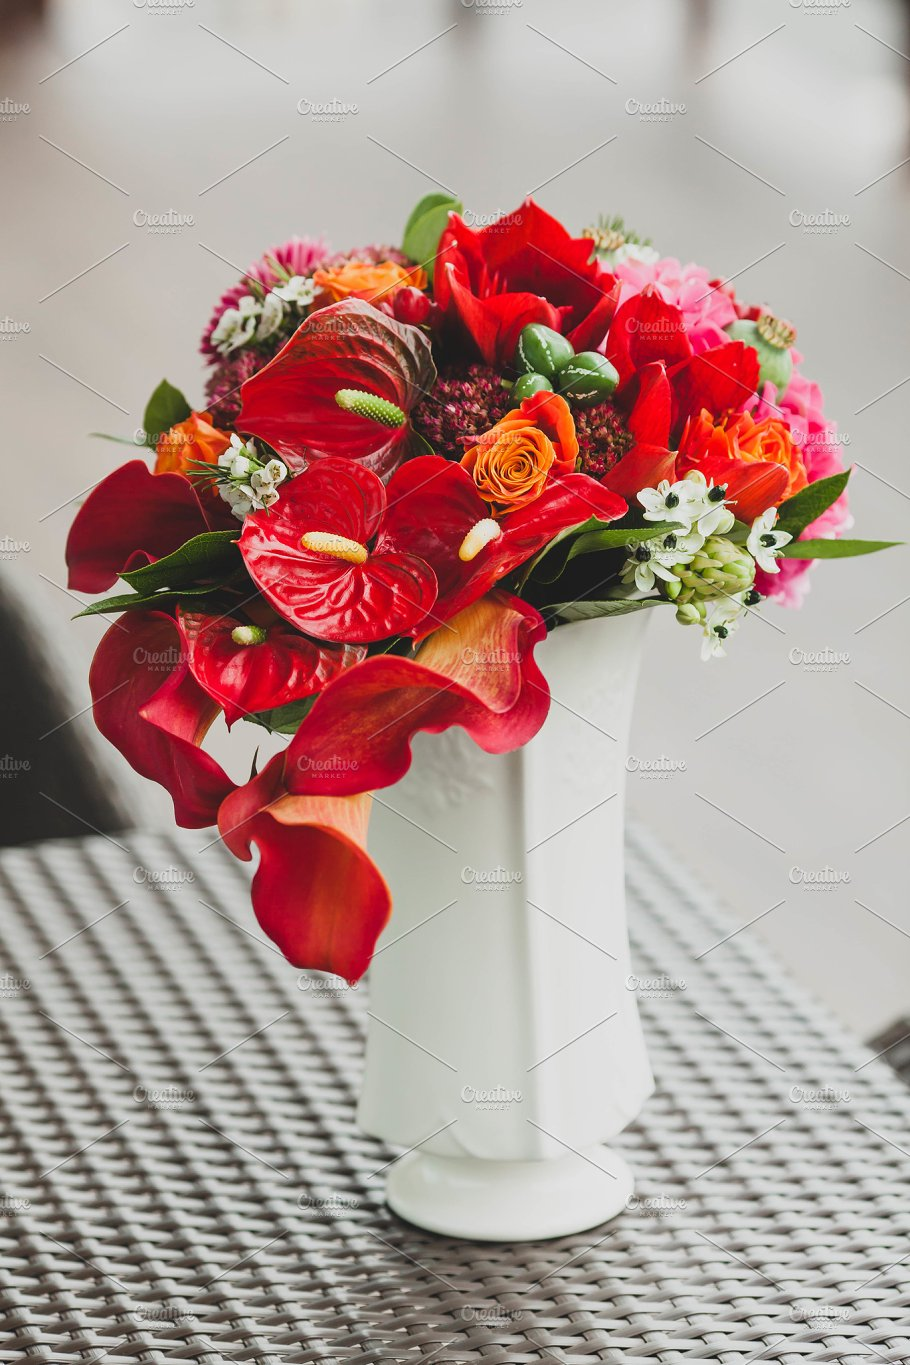 A Bouquet Of Different Red Flowers In A Vase On A Table Close Up